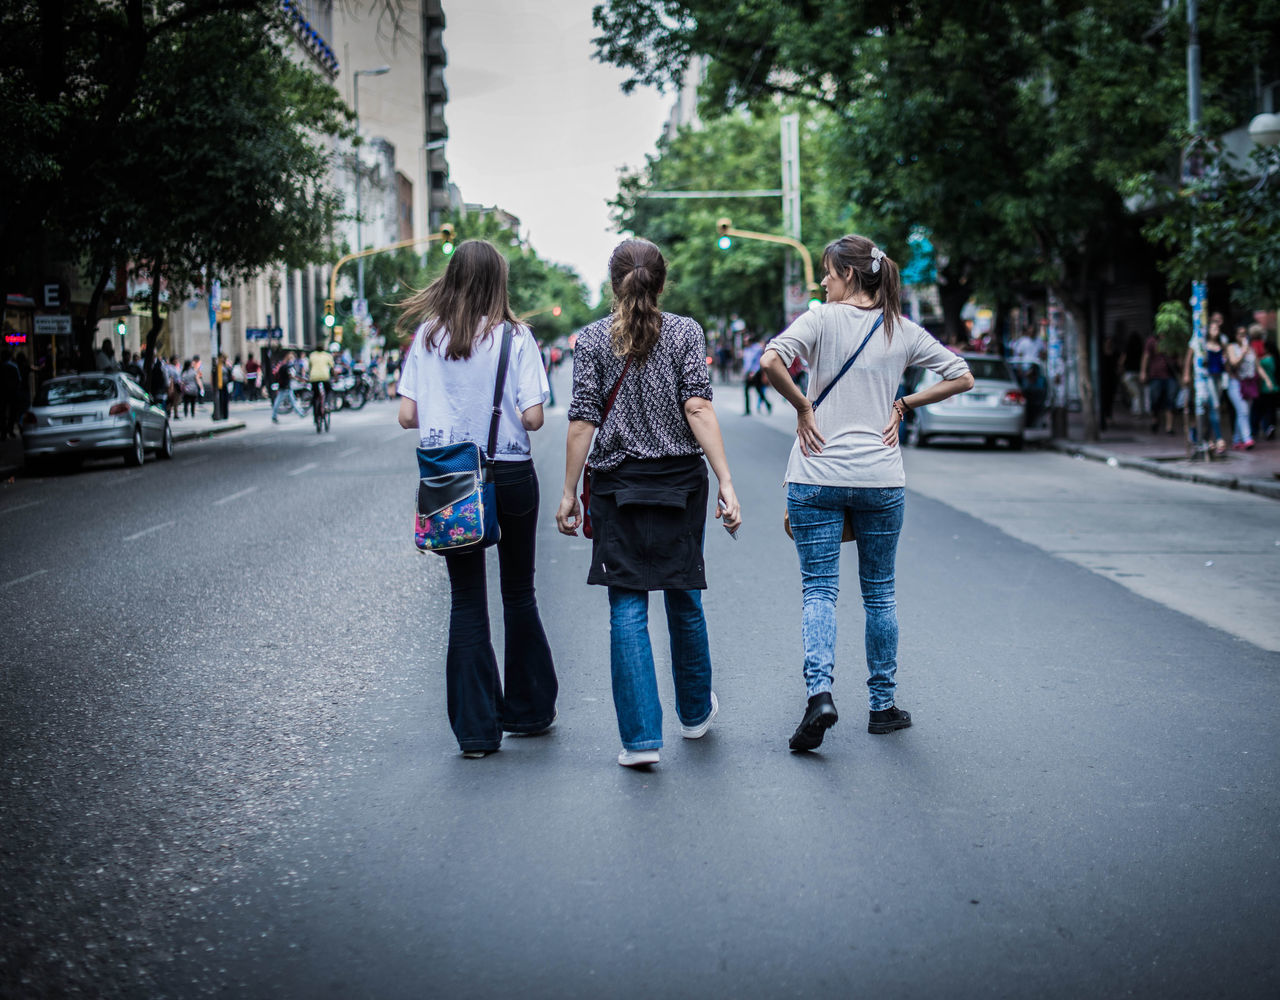 full length, casual clothing, day, street, real people, outdoors, togetherness, front view, road, walking, transportation, tree, leisure activity, young adult, young women, women, lifestyles, friendship, wireless technology, building exterior, technology, adult, people, adults only